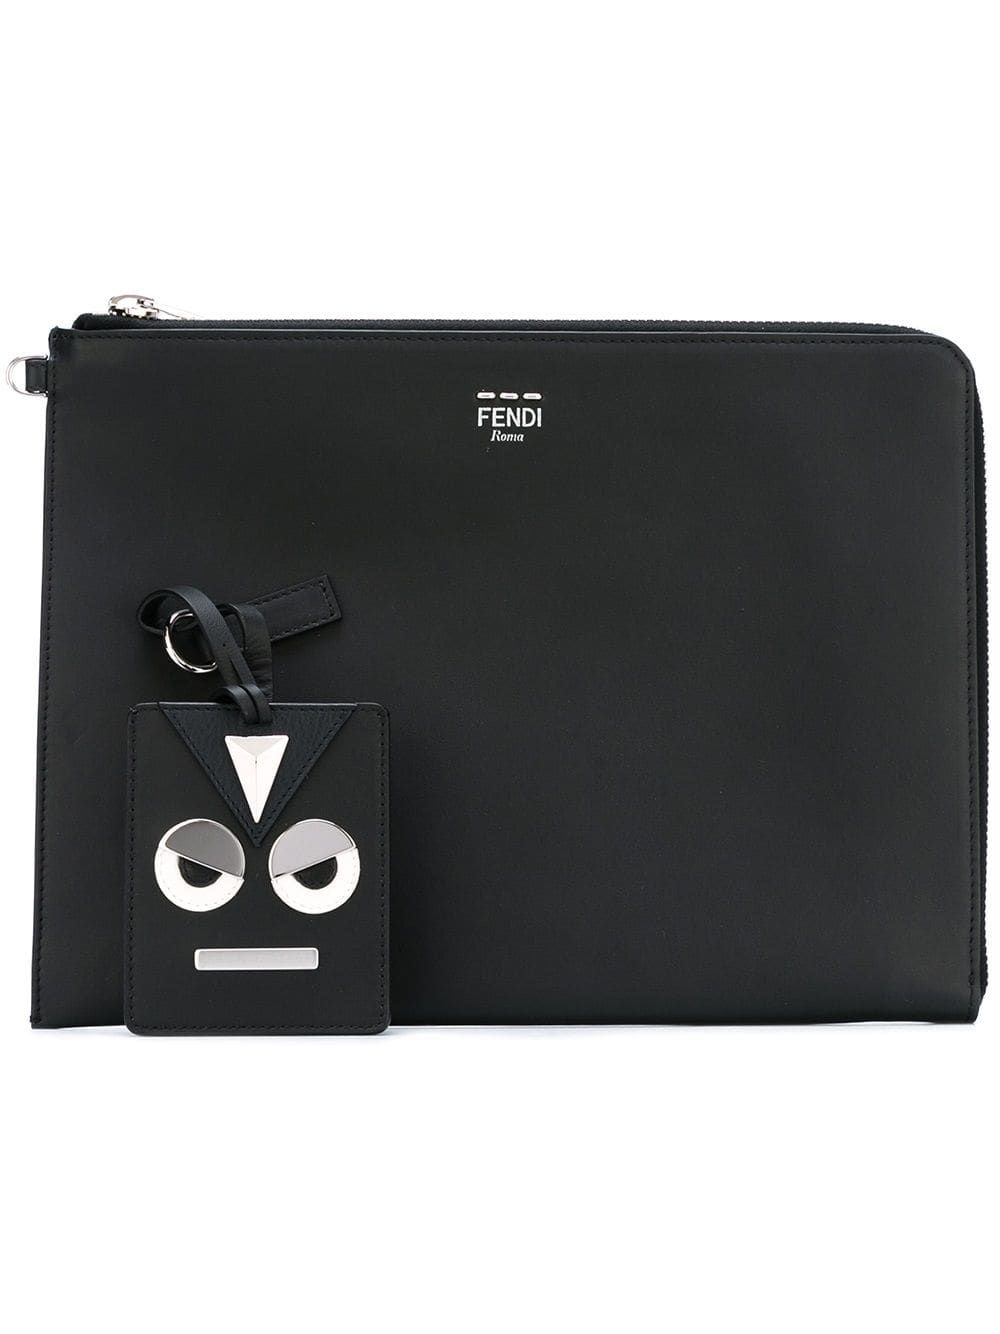 2696f07d94 FENDI FENDI ZIP FASTENING LAPTOP CASE - BLACK.  fendi  bags  leather   keychain  accessories